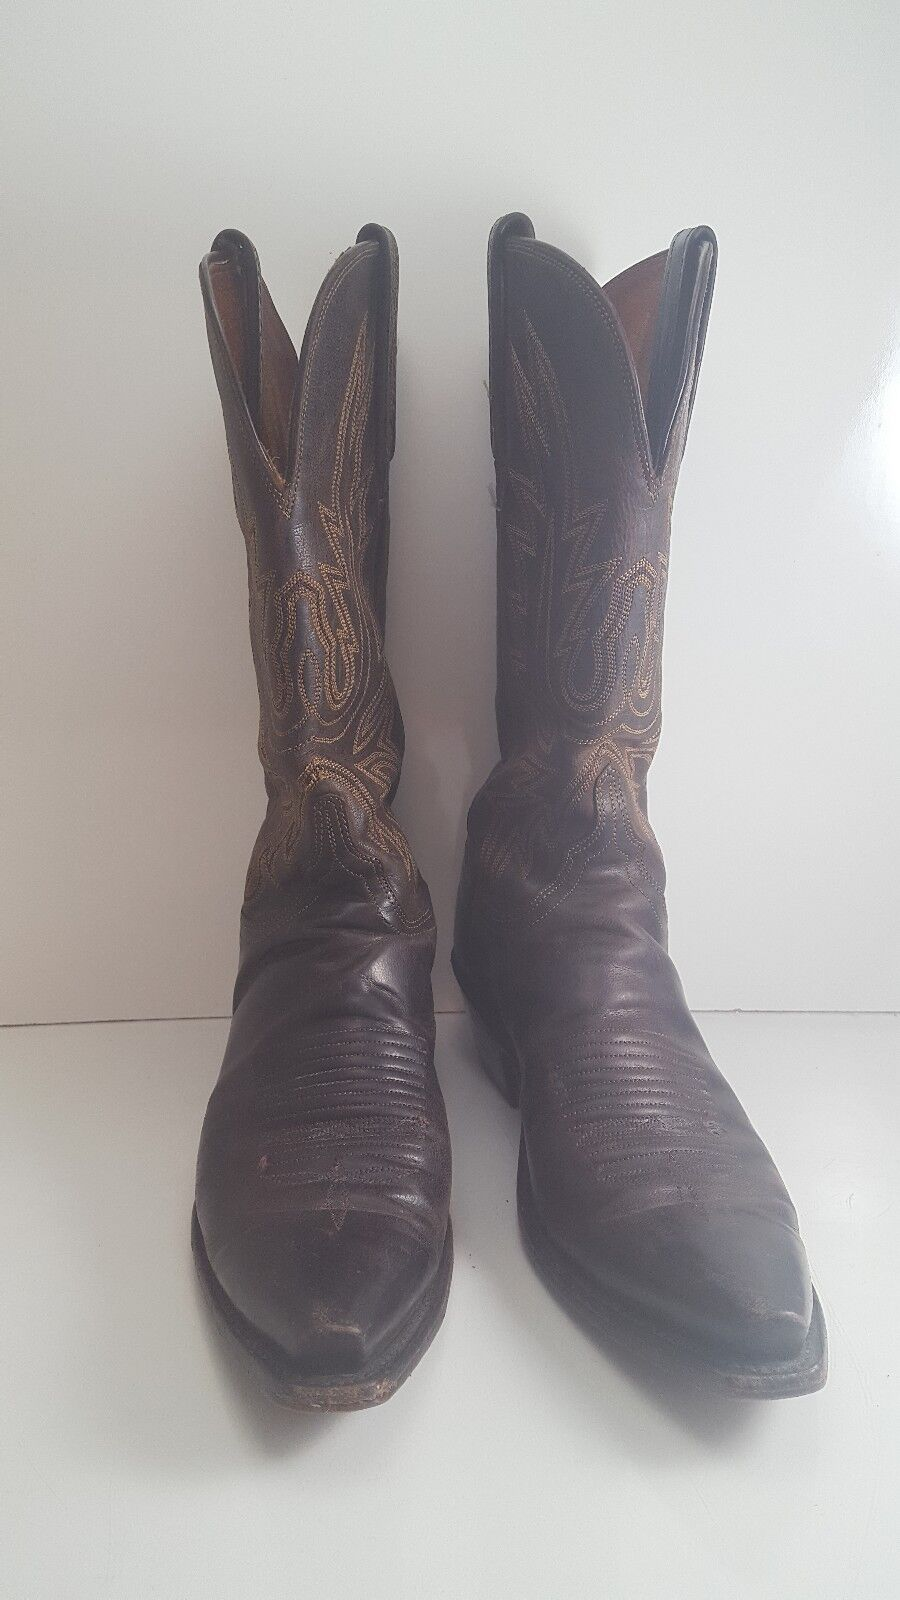 GENUINE LUCHESE 1883BROWN LEATHER WOMEN'S COWBOY BOOTS, SIZE 8